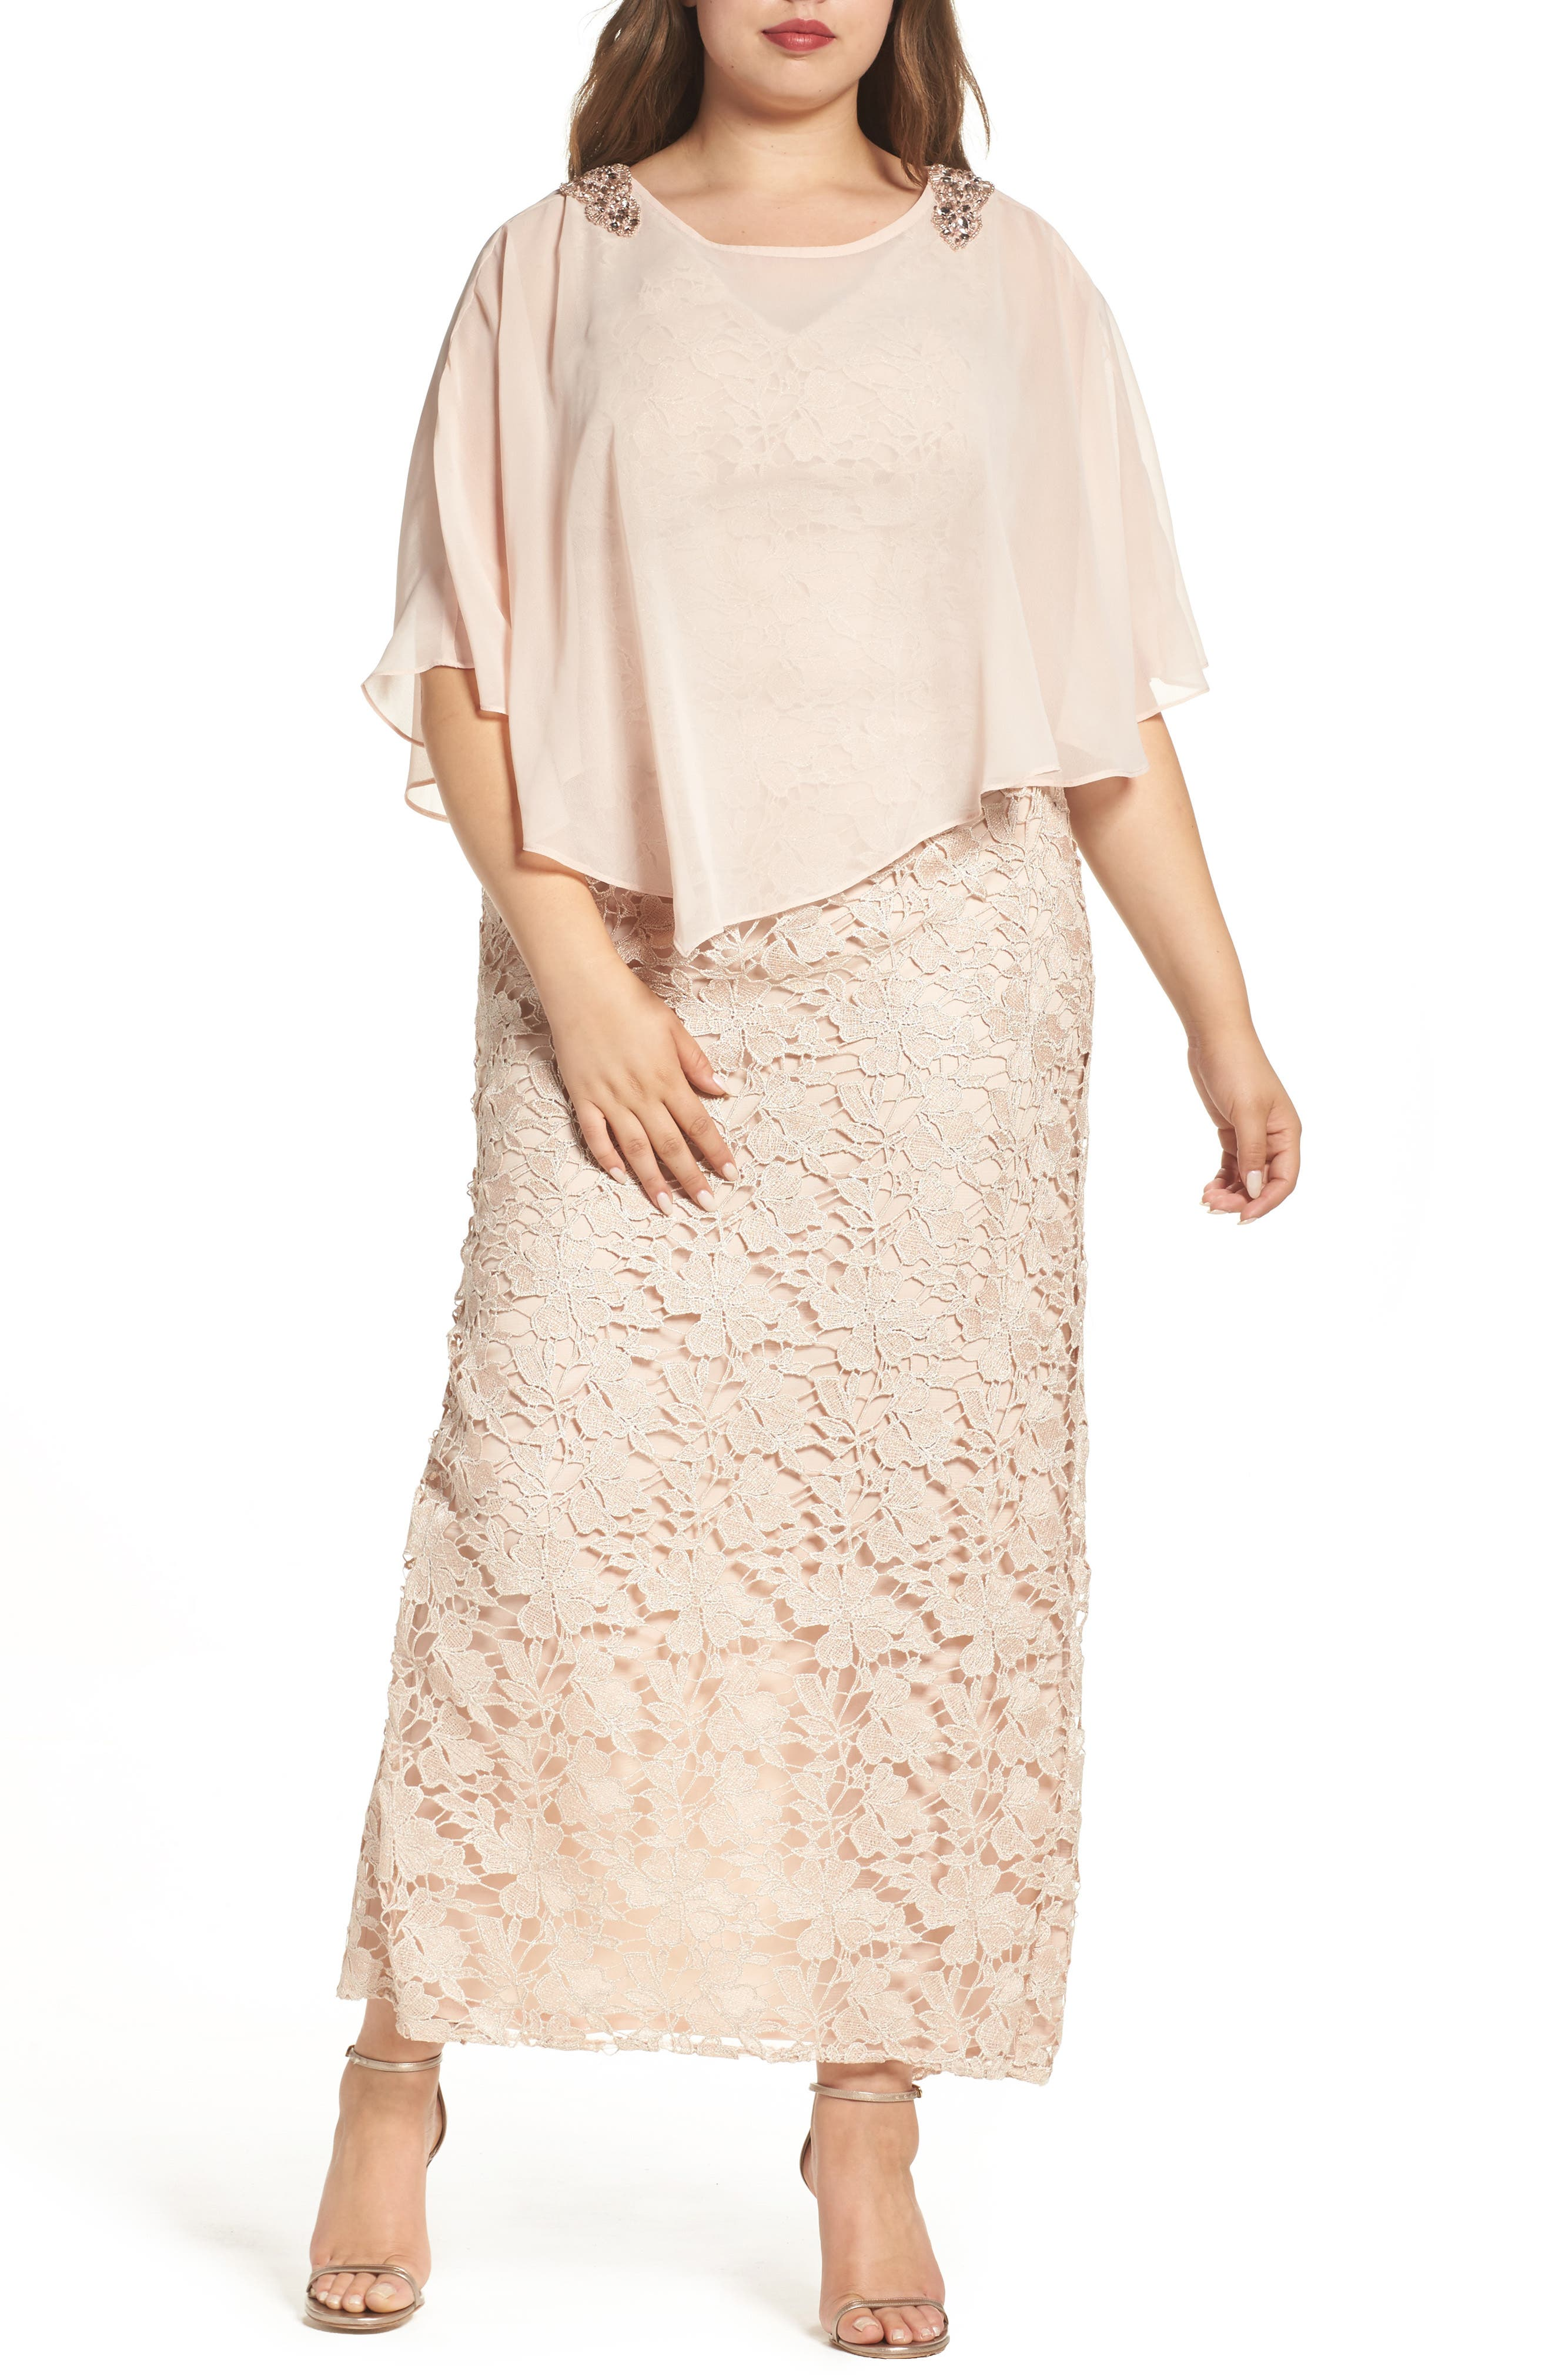 Decode Poncho Over Floral Lace Dress (Plus Size)